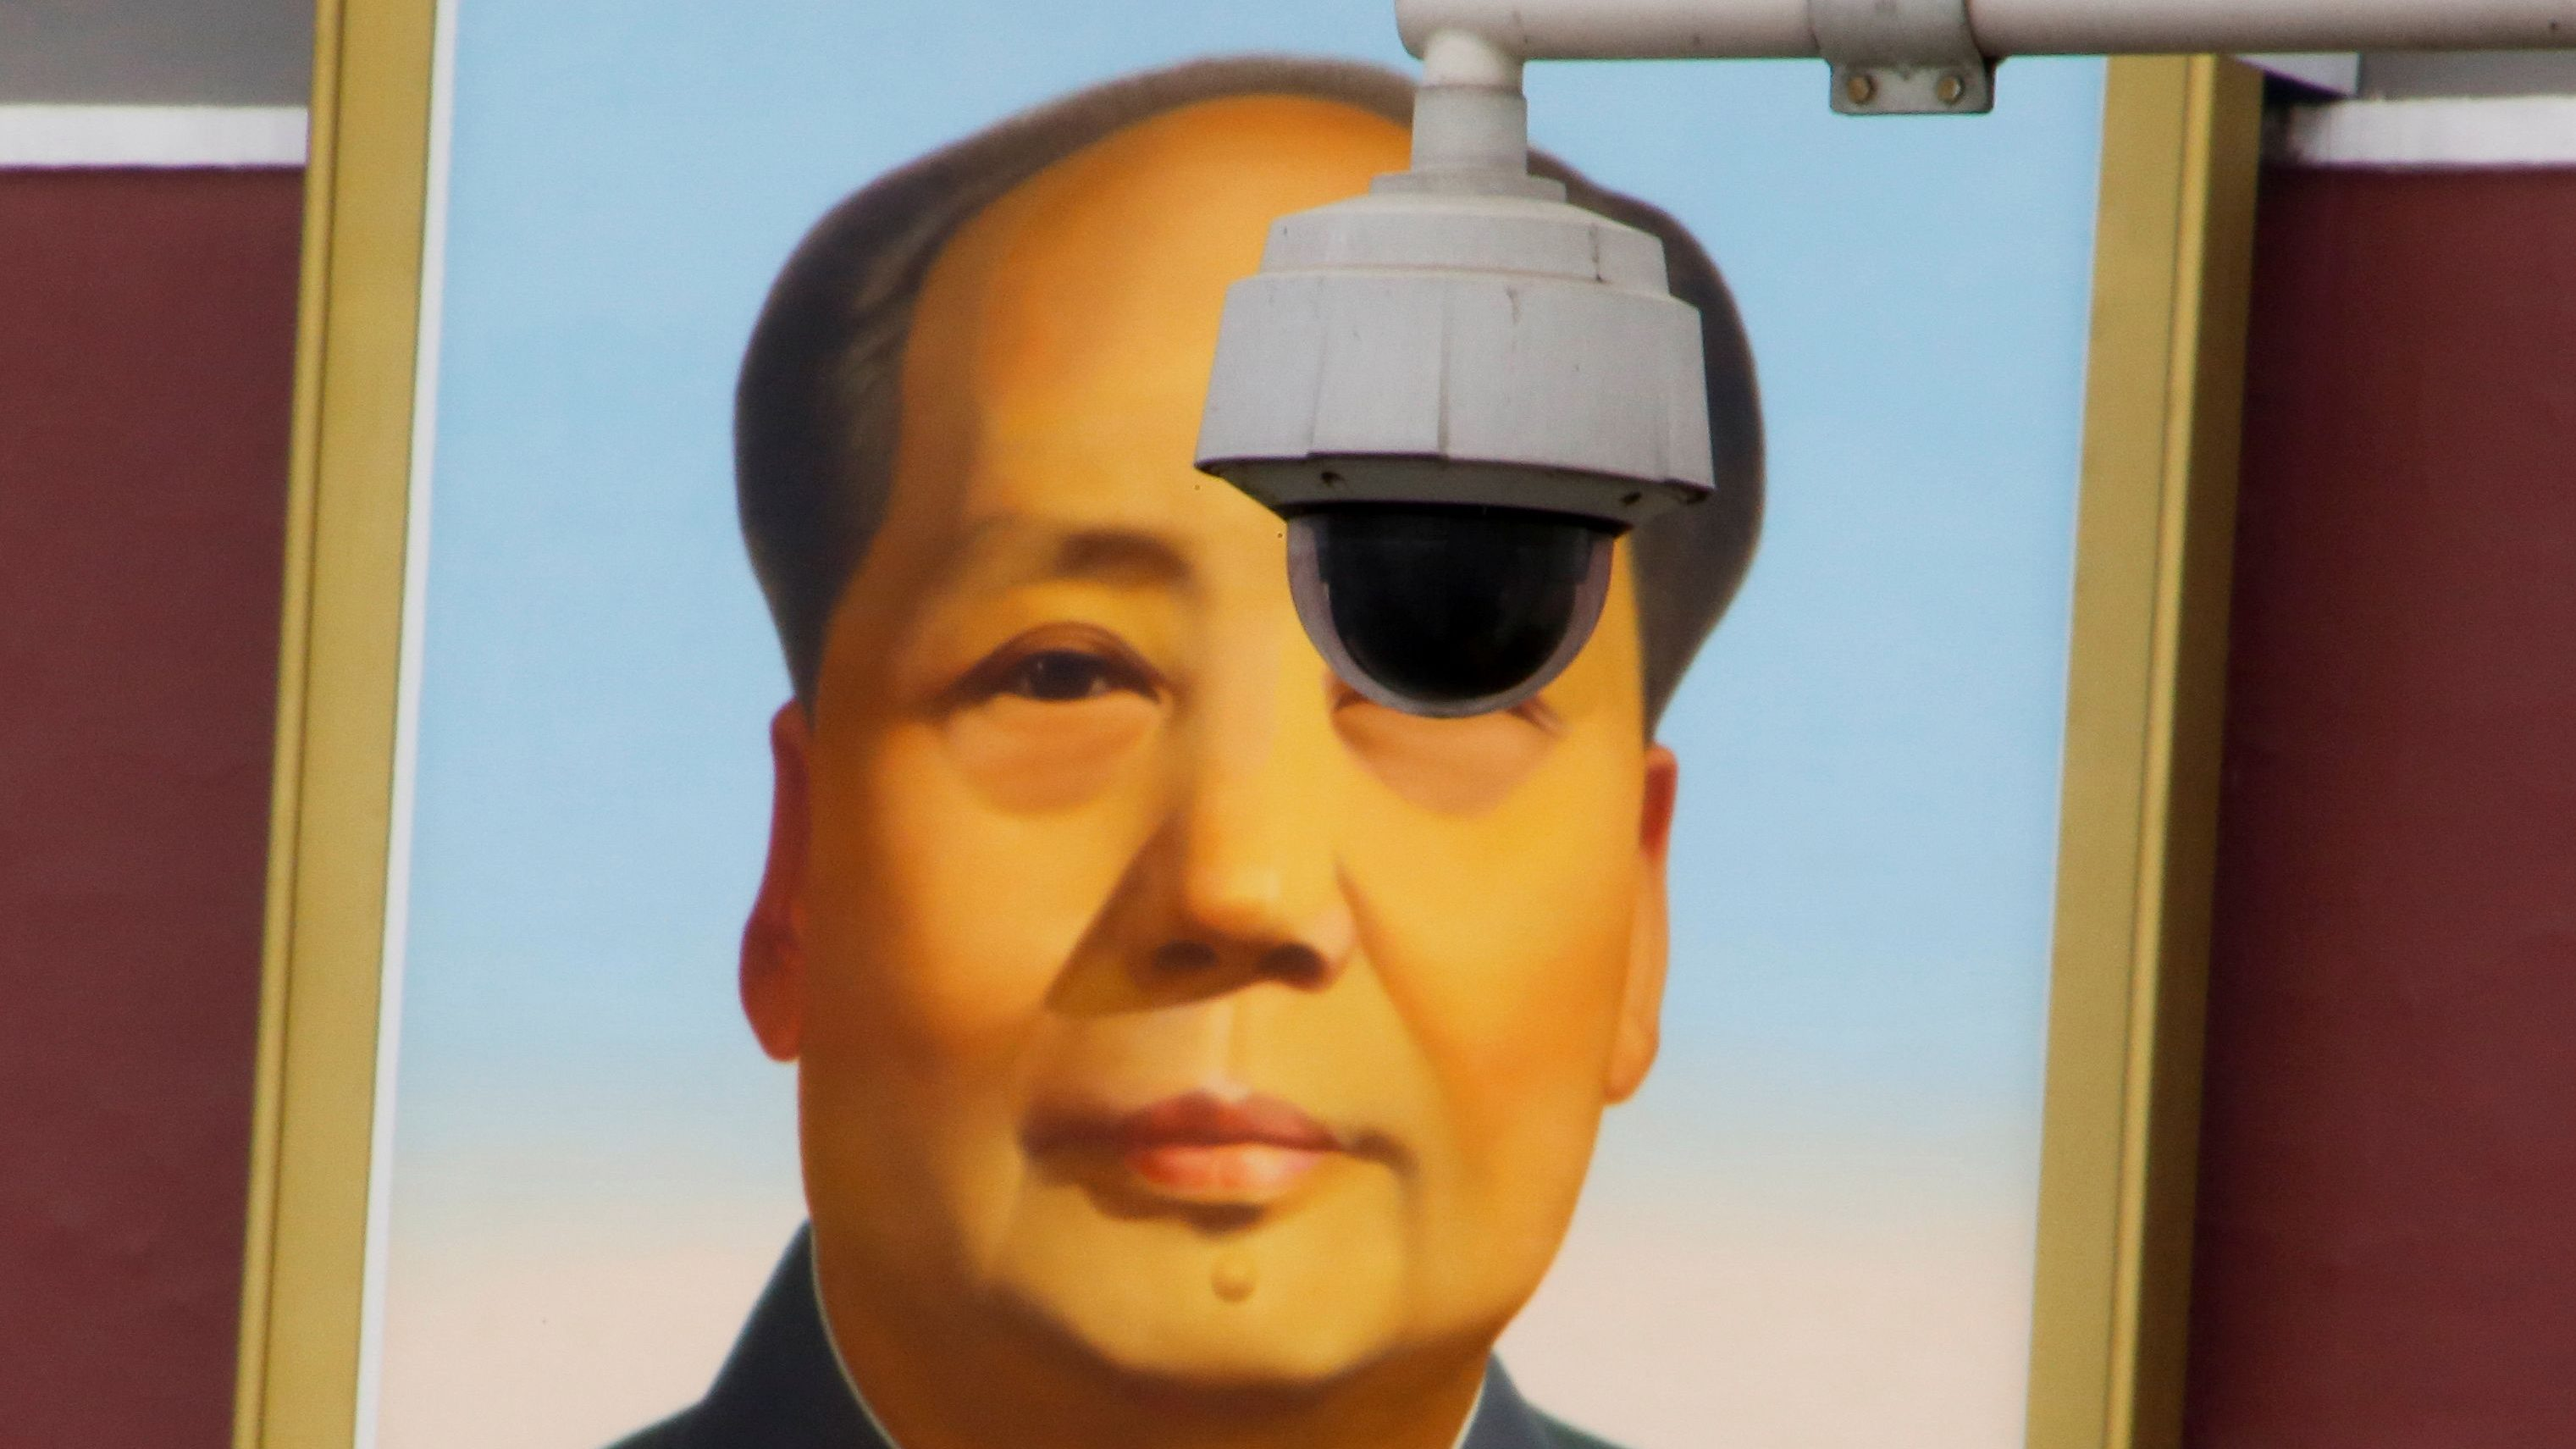 A security camera overlooks Tiananmen Square in front of a portrait of the late Chinese Chairman Mao Zedong in Beijing, China March 6, 2018.